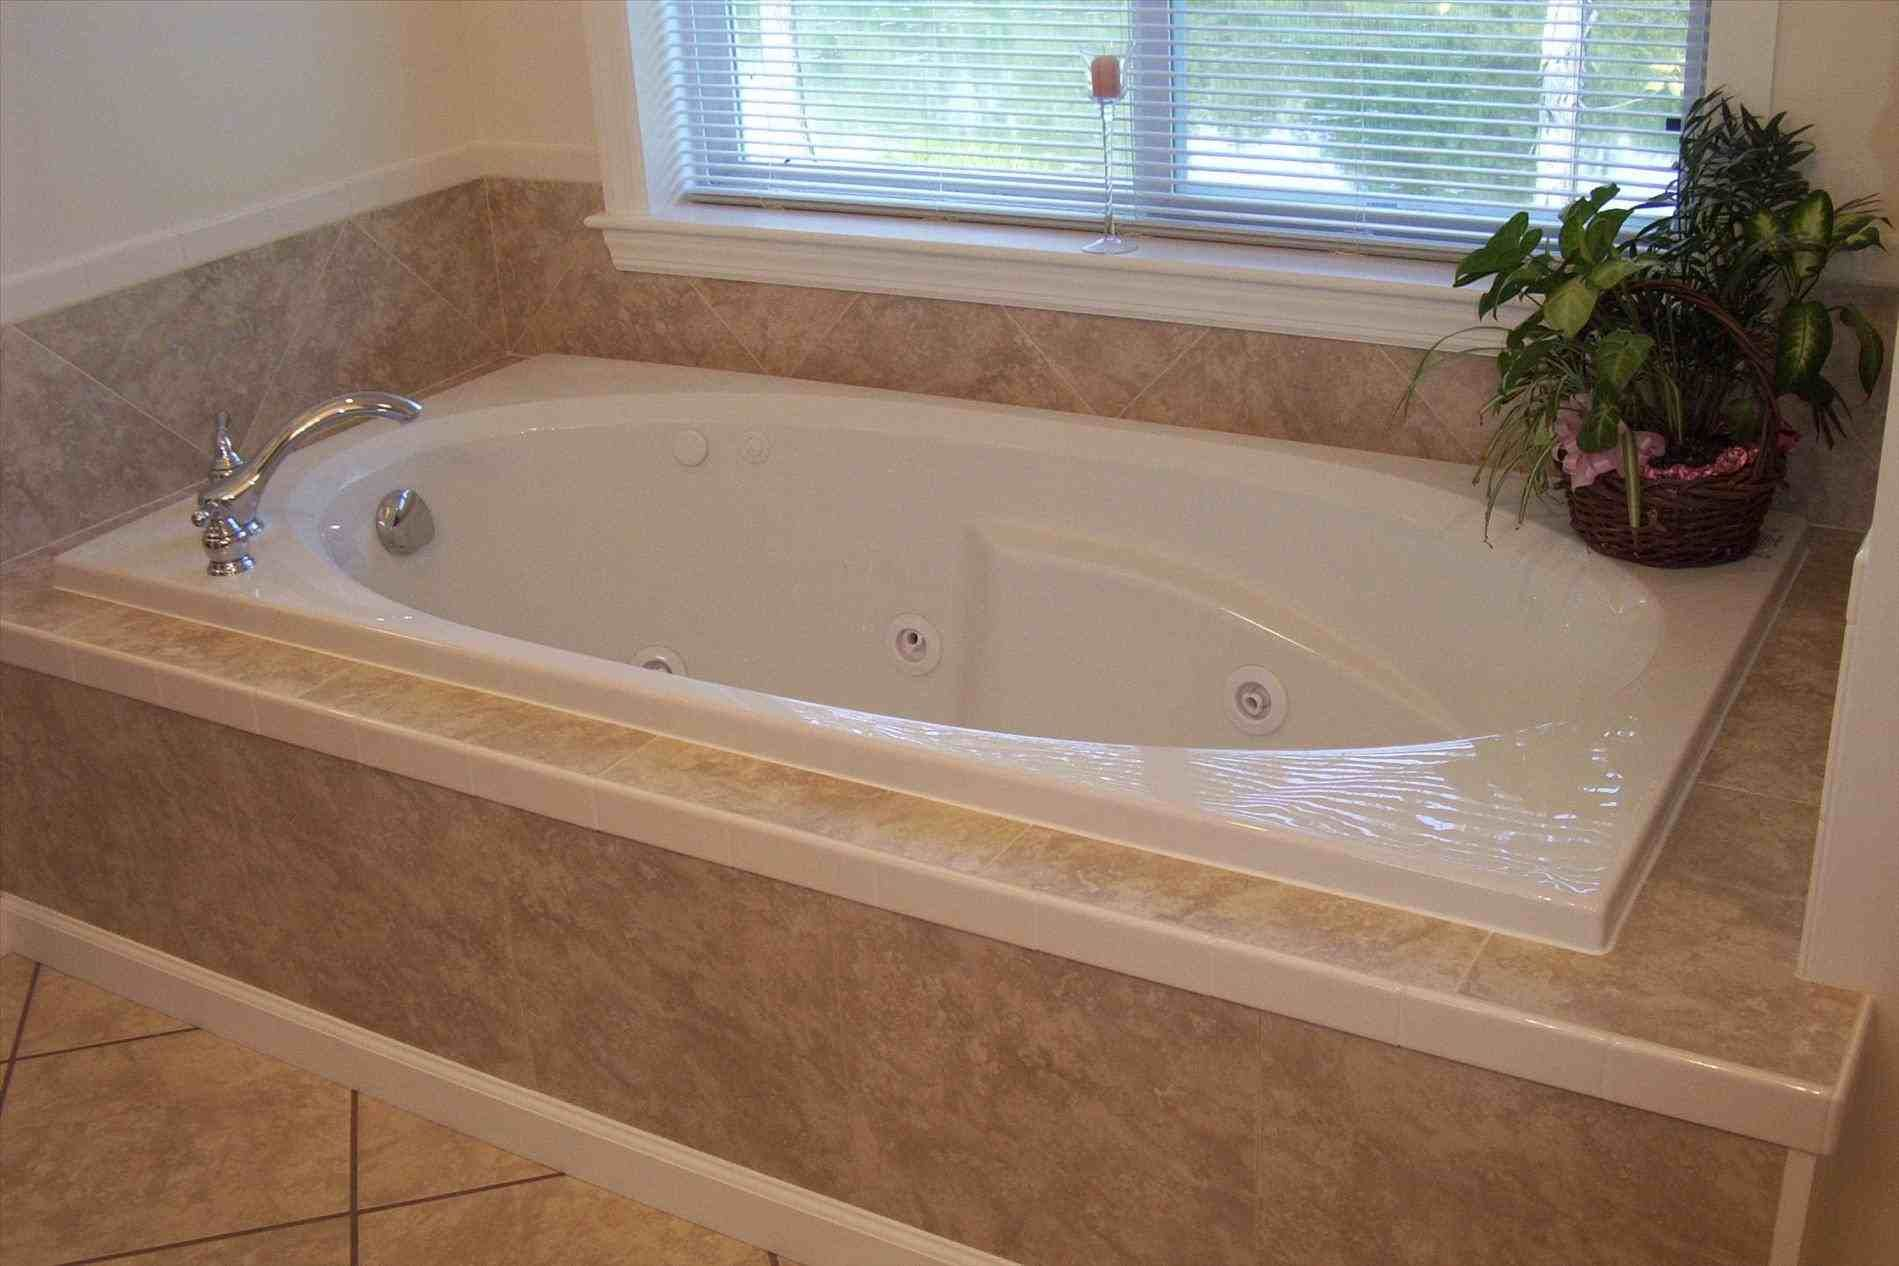 New Post cheap jacuzzi bath visit bathroomremodelideass.club | Home ...